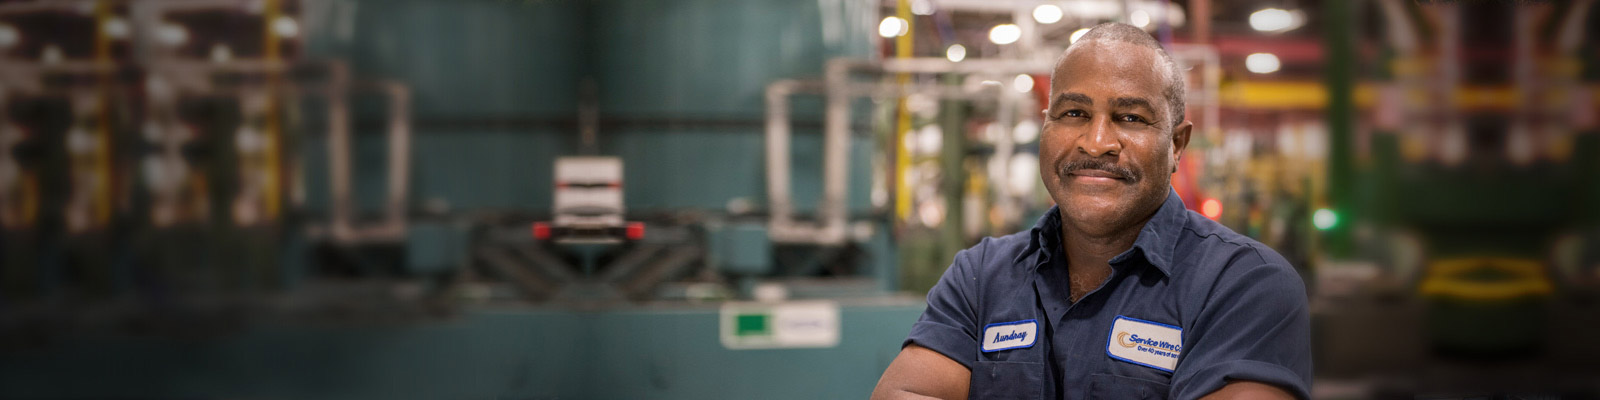 Service Wire Company employee posing for the camera at the Houston manufacturing facility